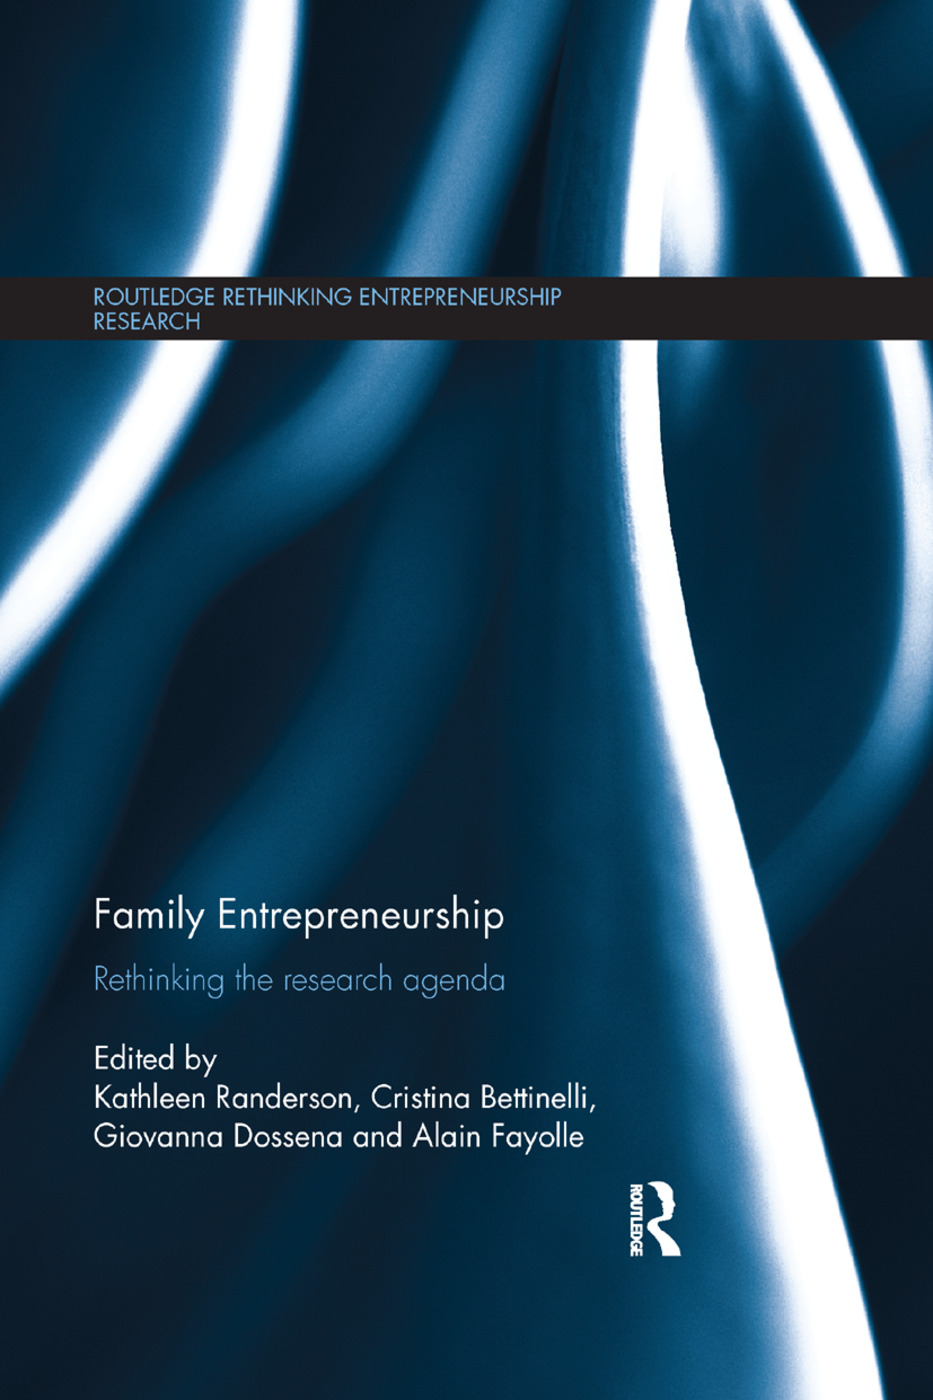 Family Entrepreneurship